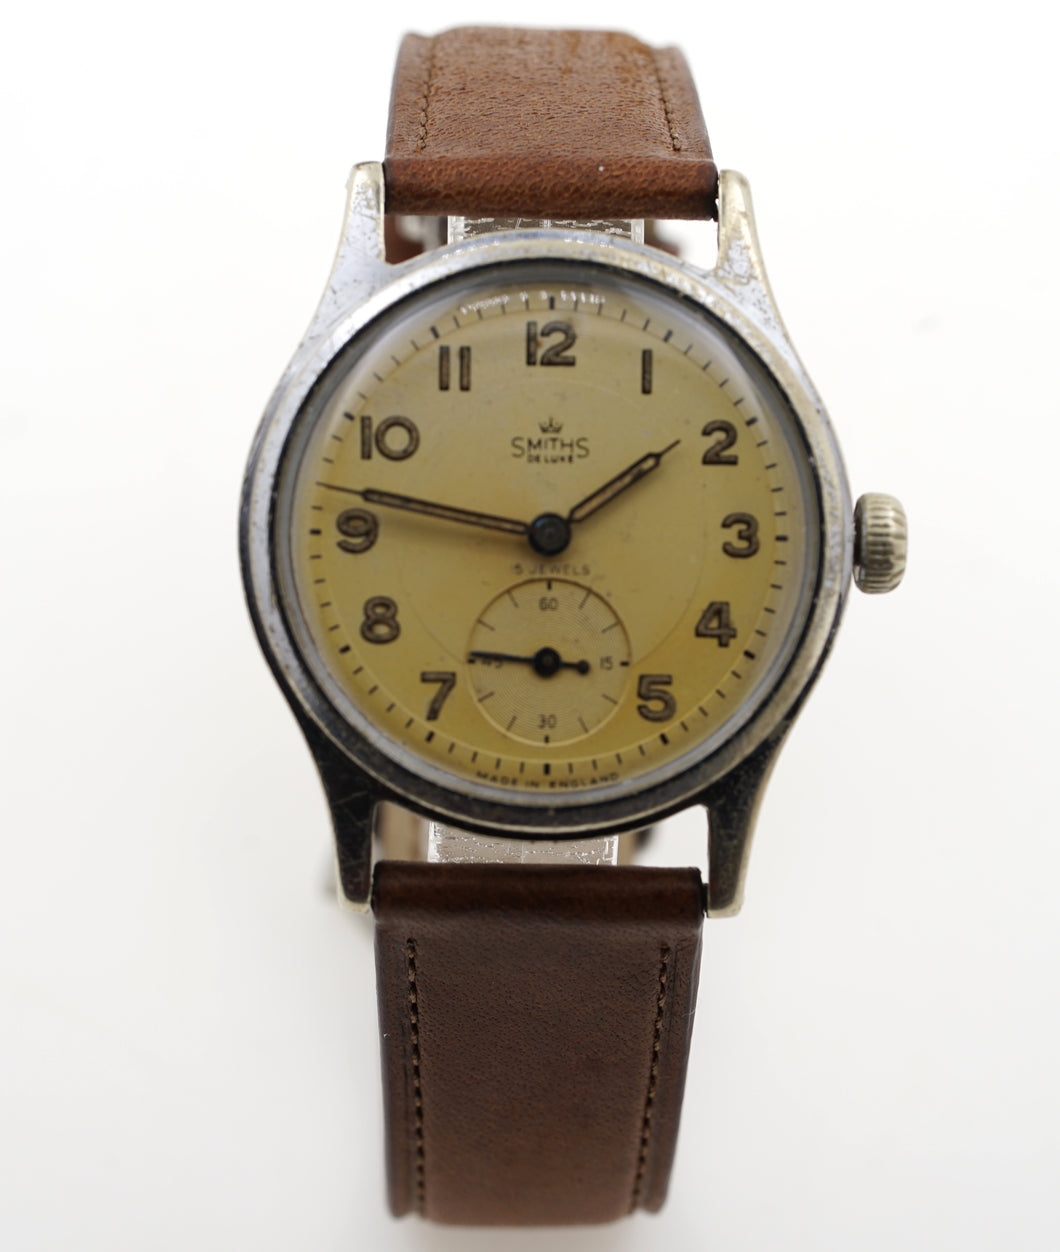 DELUXE SMITHS A404 C1955 EXPEDITIONARY PATTERN WATCH 14